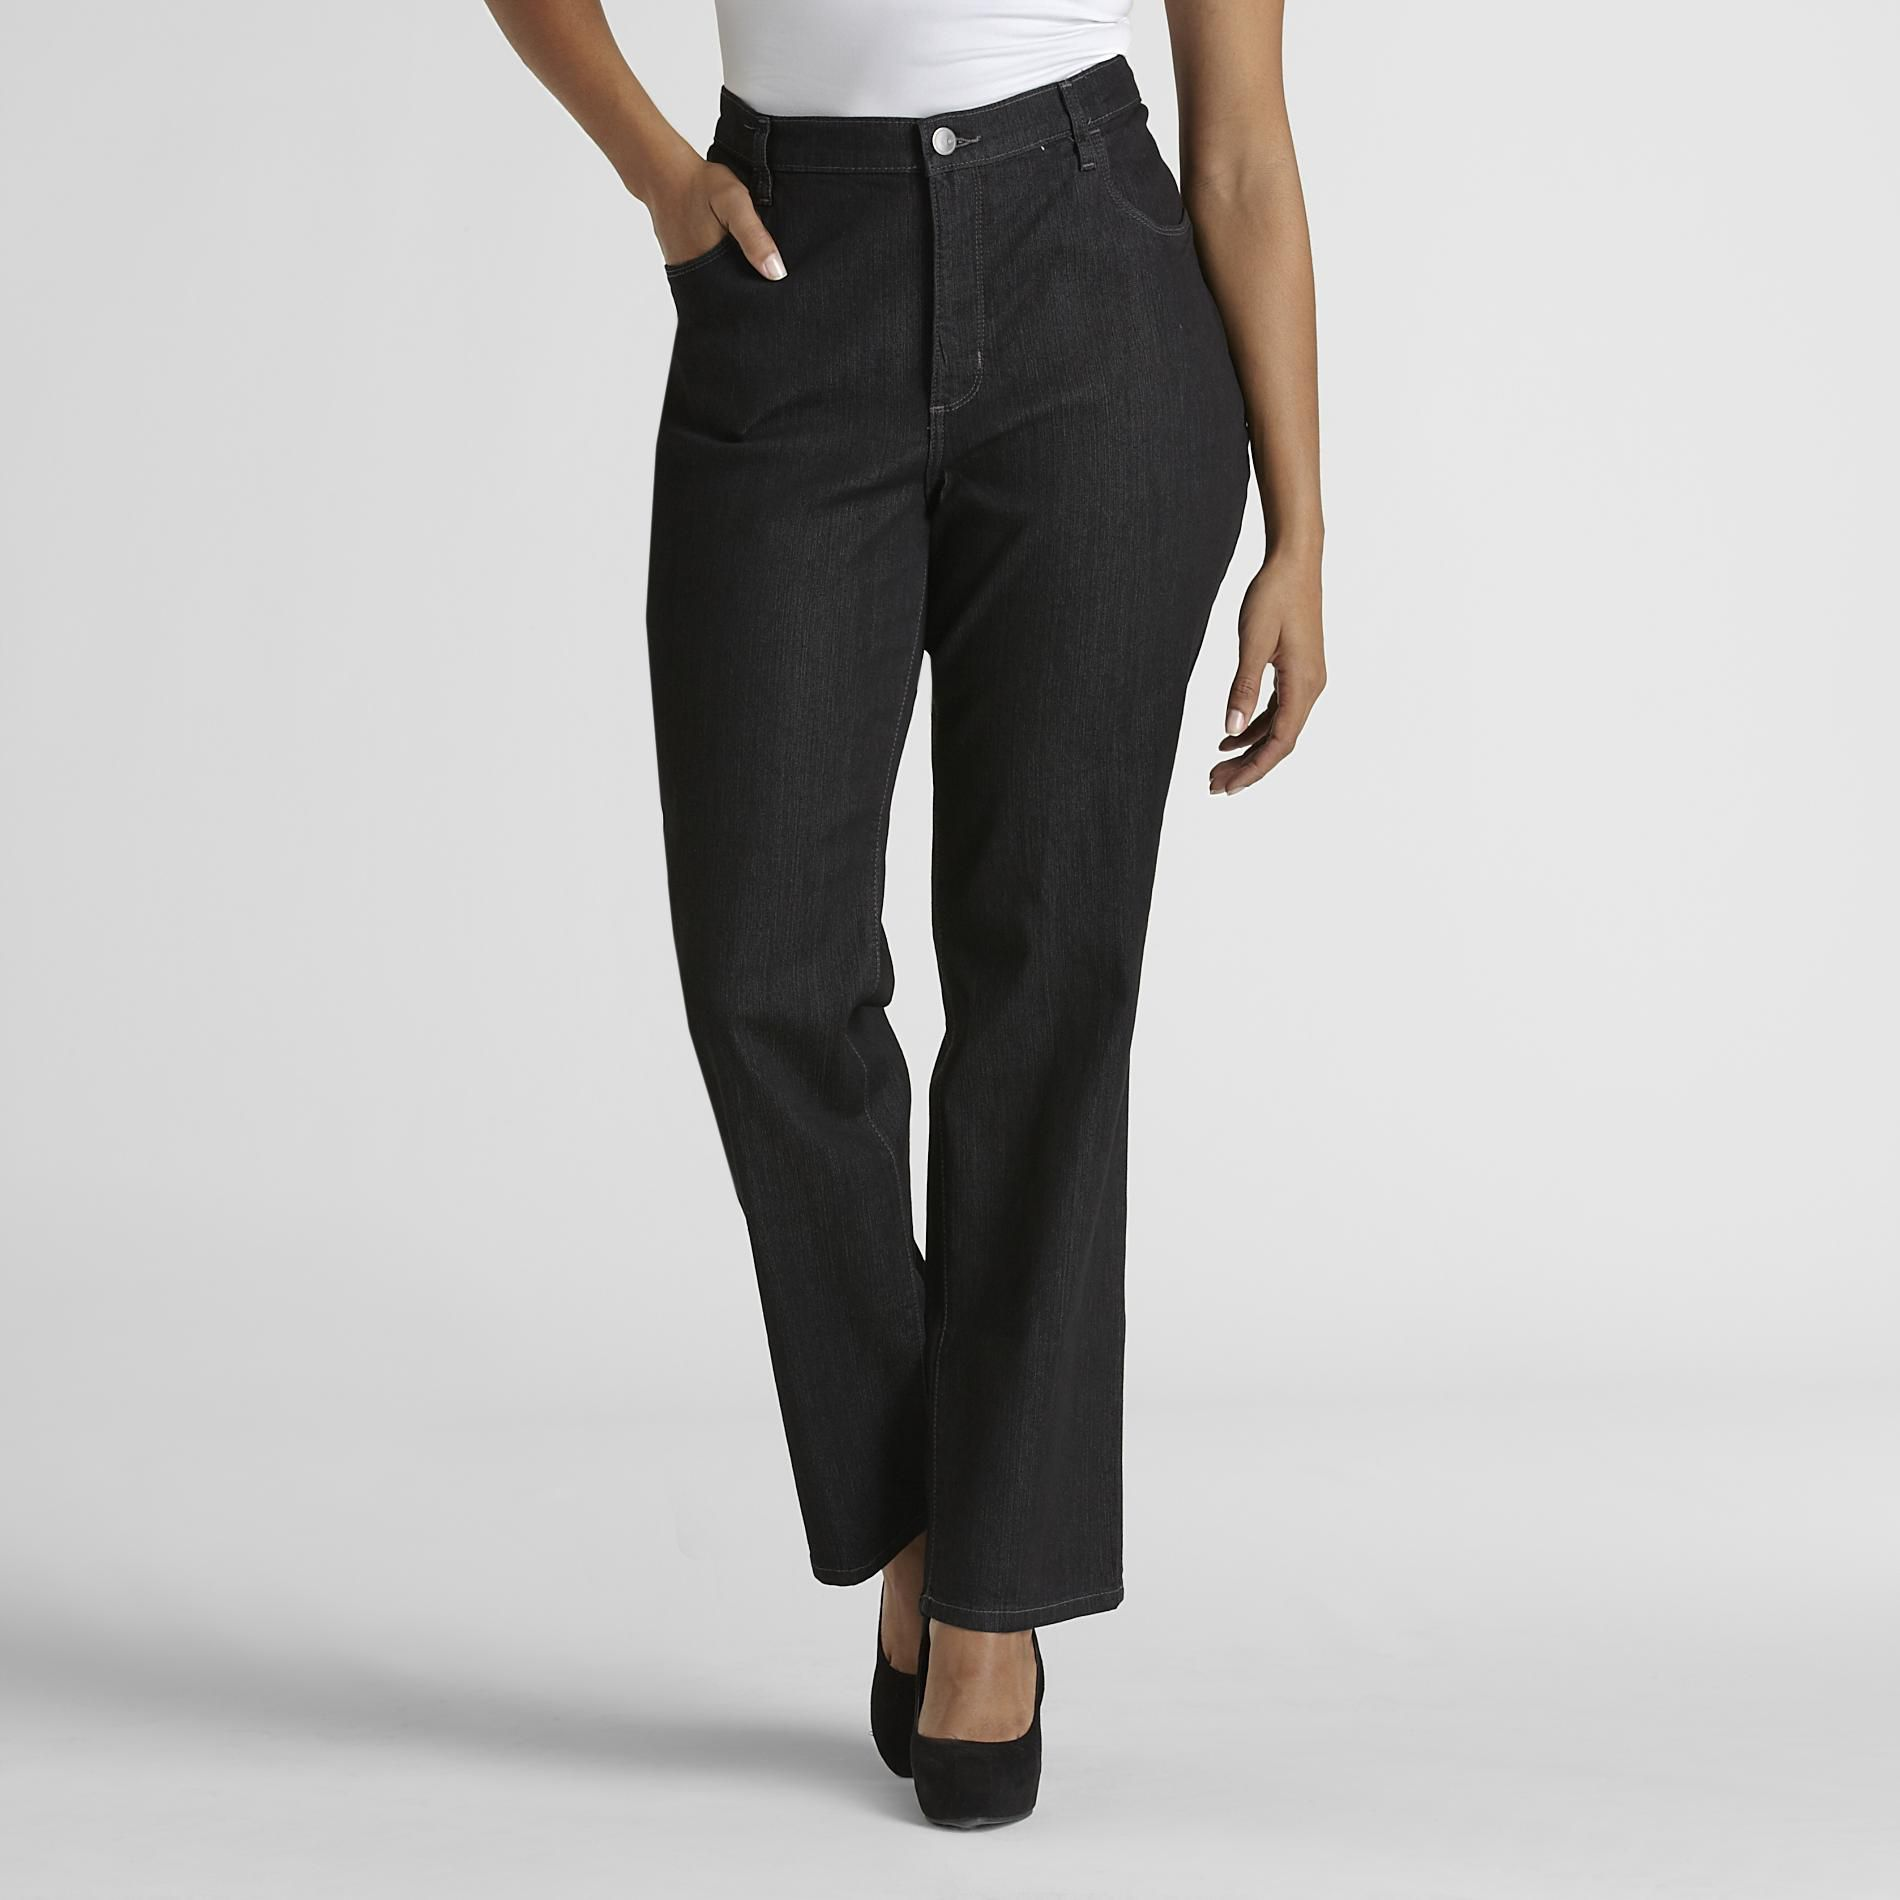 LEE Women's Plus Classic Fit Bootcut Jeans at Sears.com